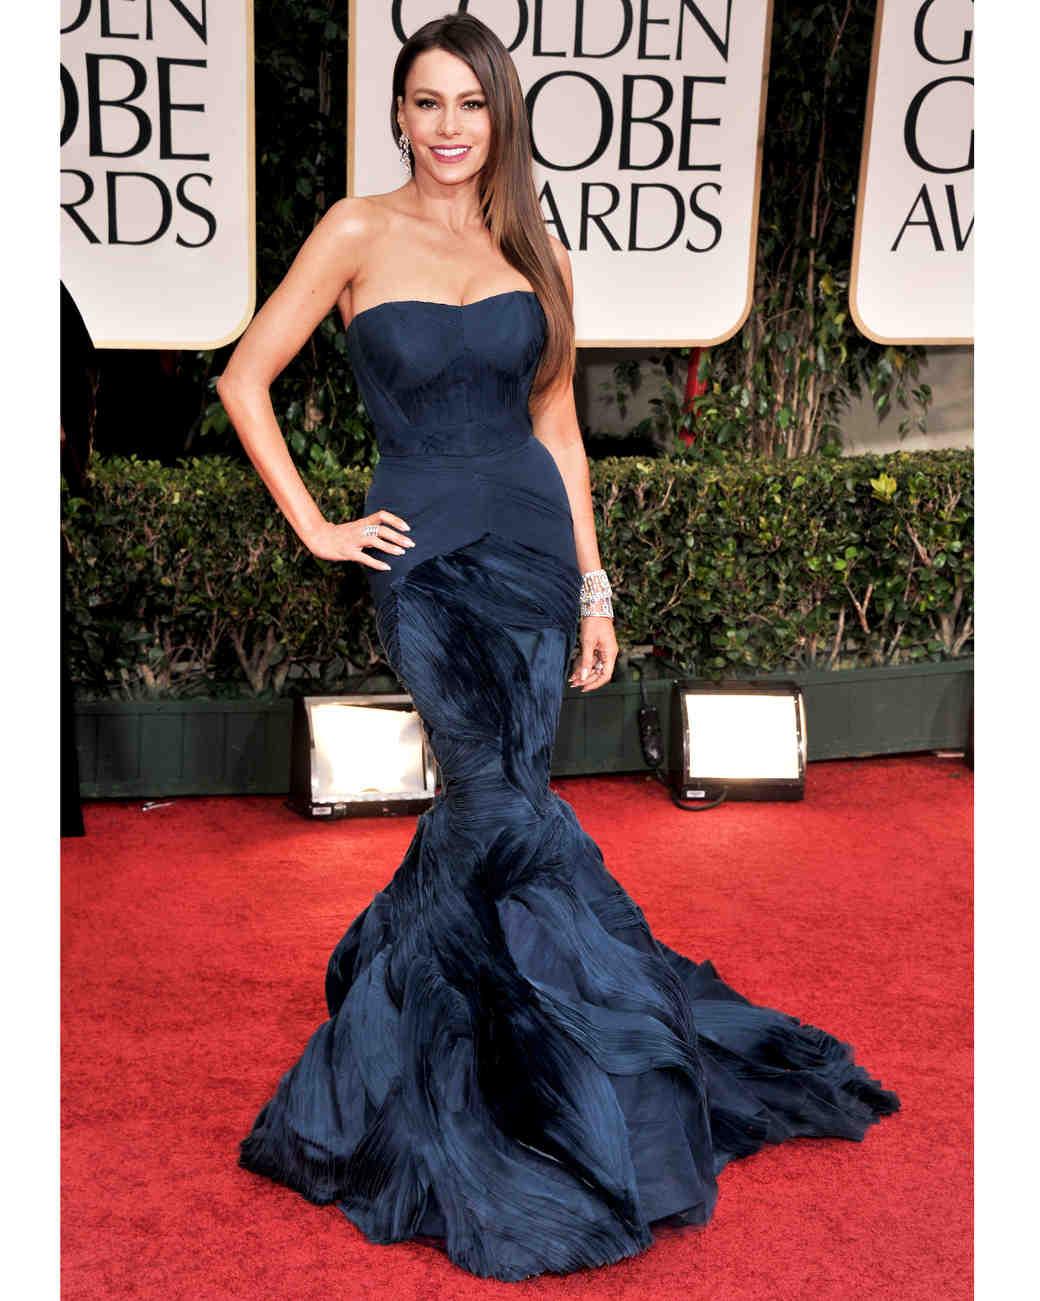 sofia-vergara-red-carpet-golden-globes-vera-wang-navy-ruffle-0815.jpg